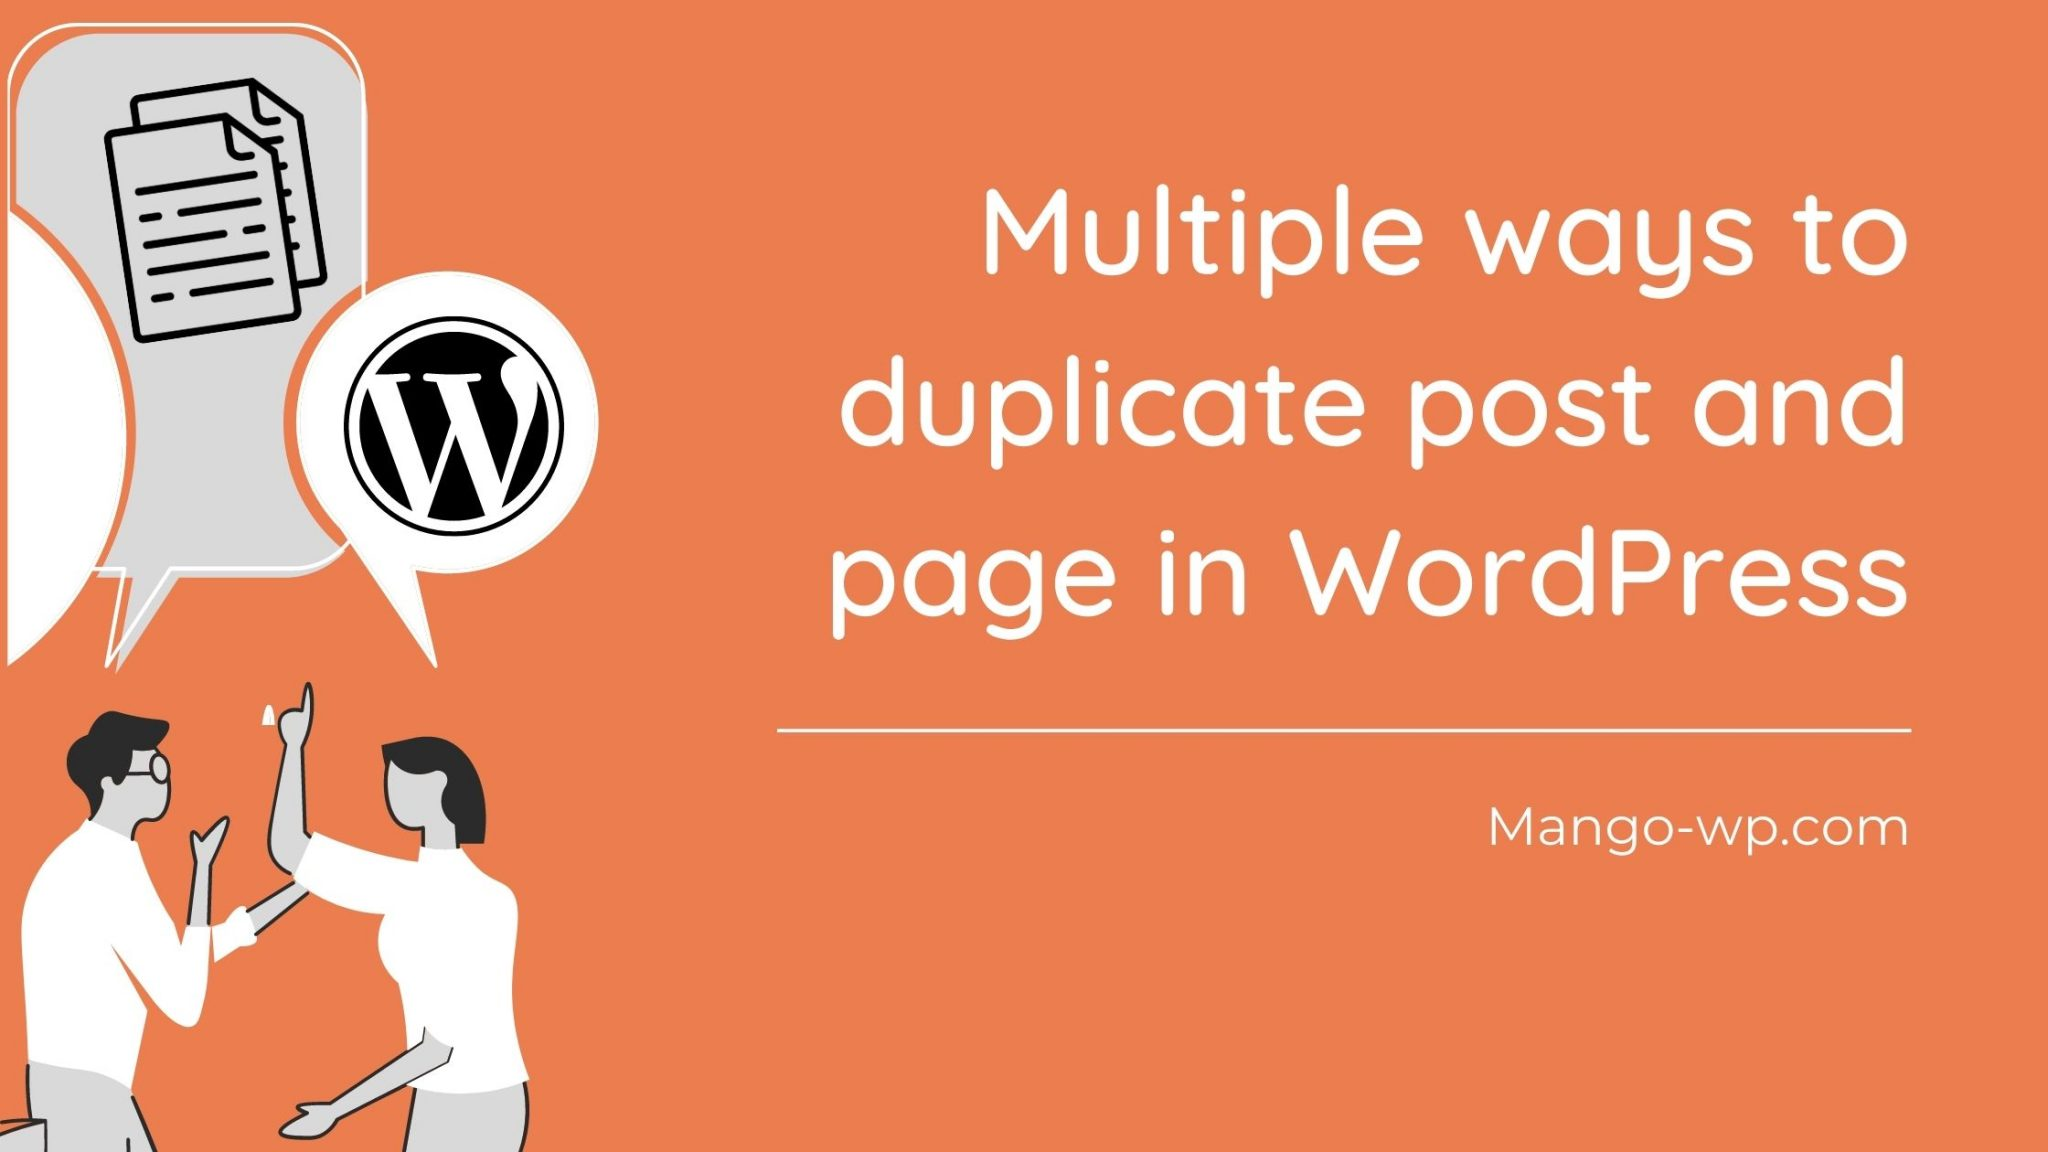 Multiple ways for duplicating posts and pages